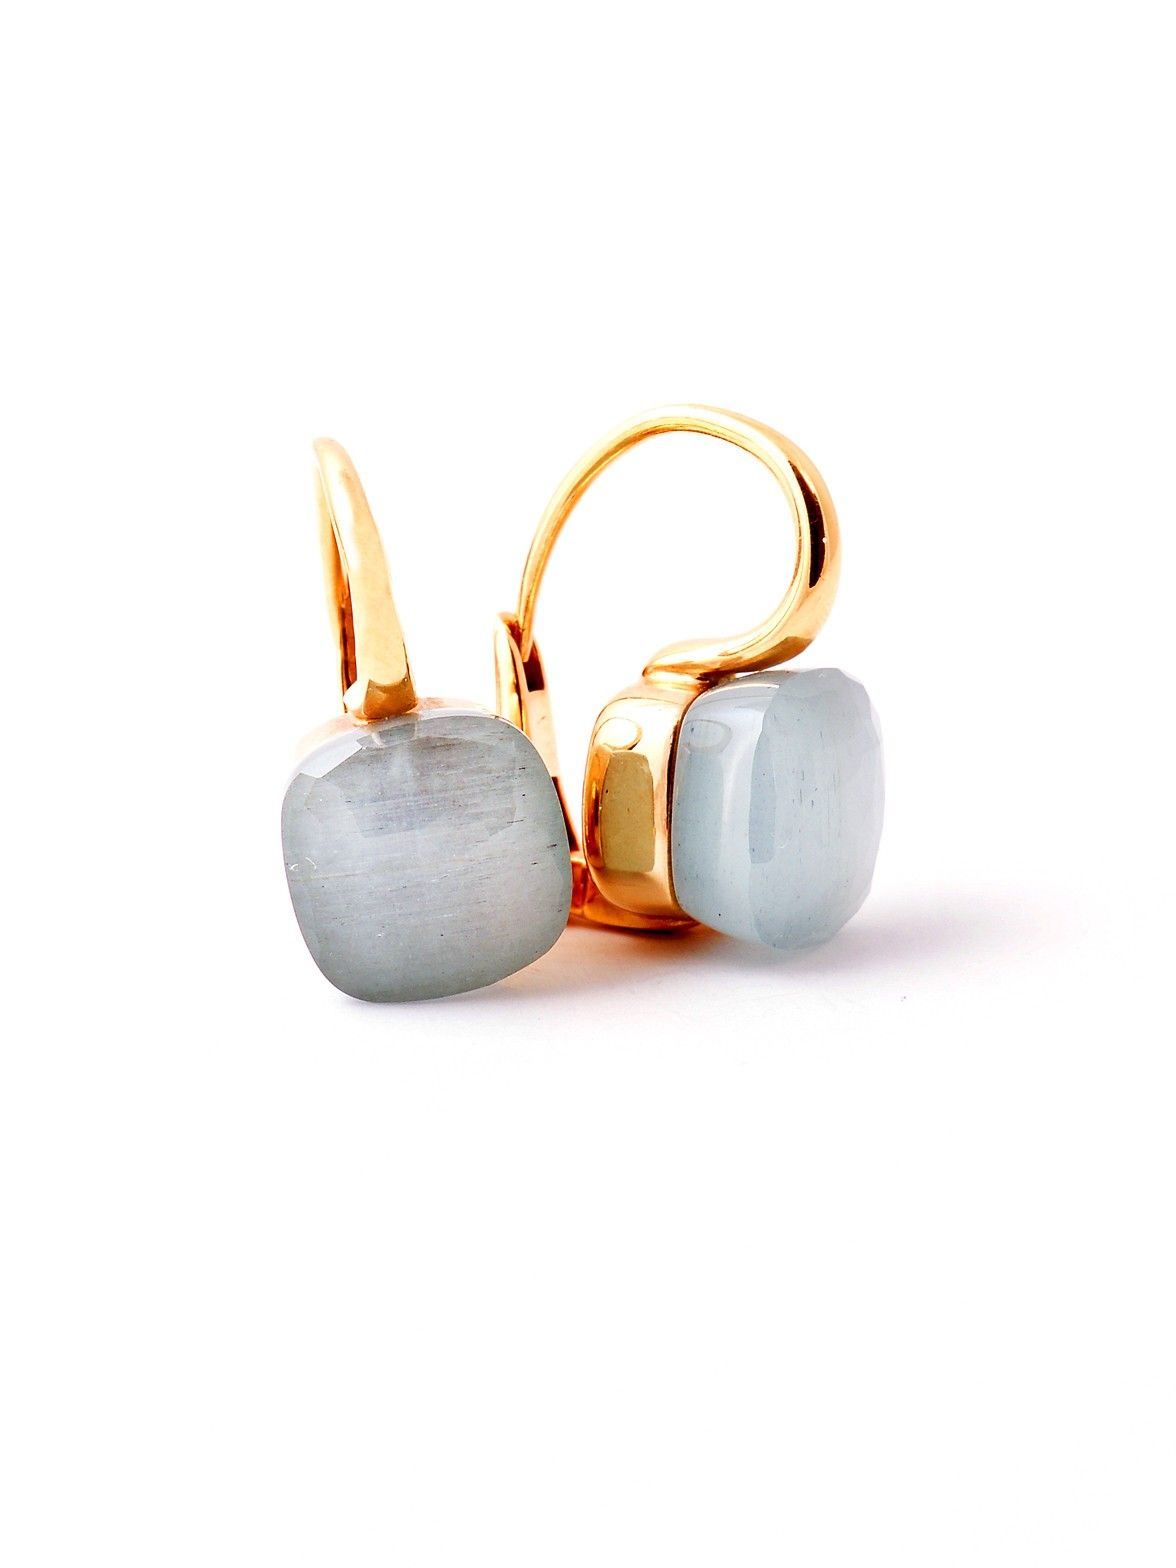 Pomellato Nudo Milky Aquamarine Earrings At London Jewelers